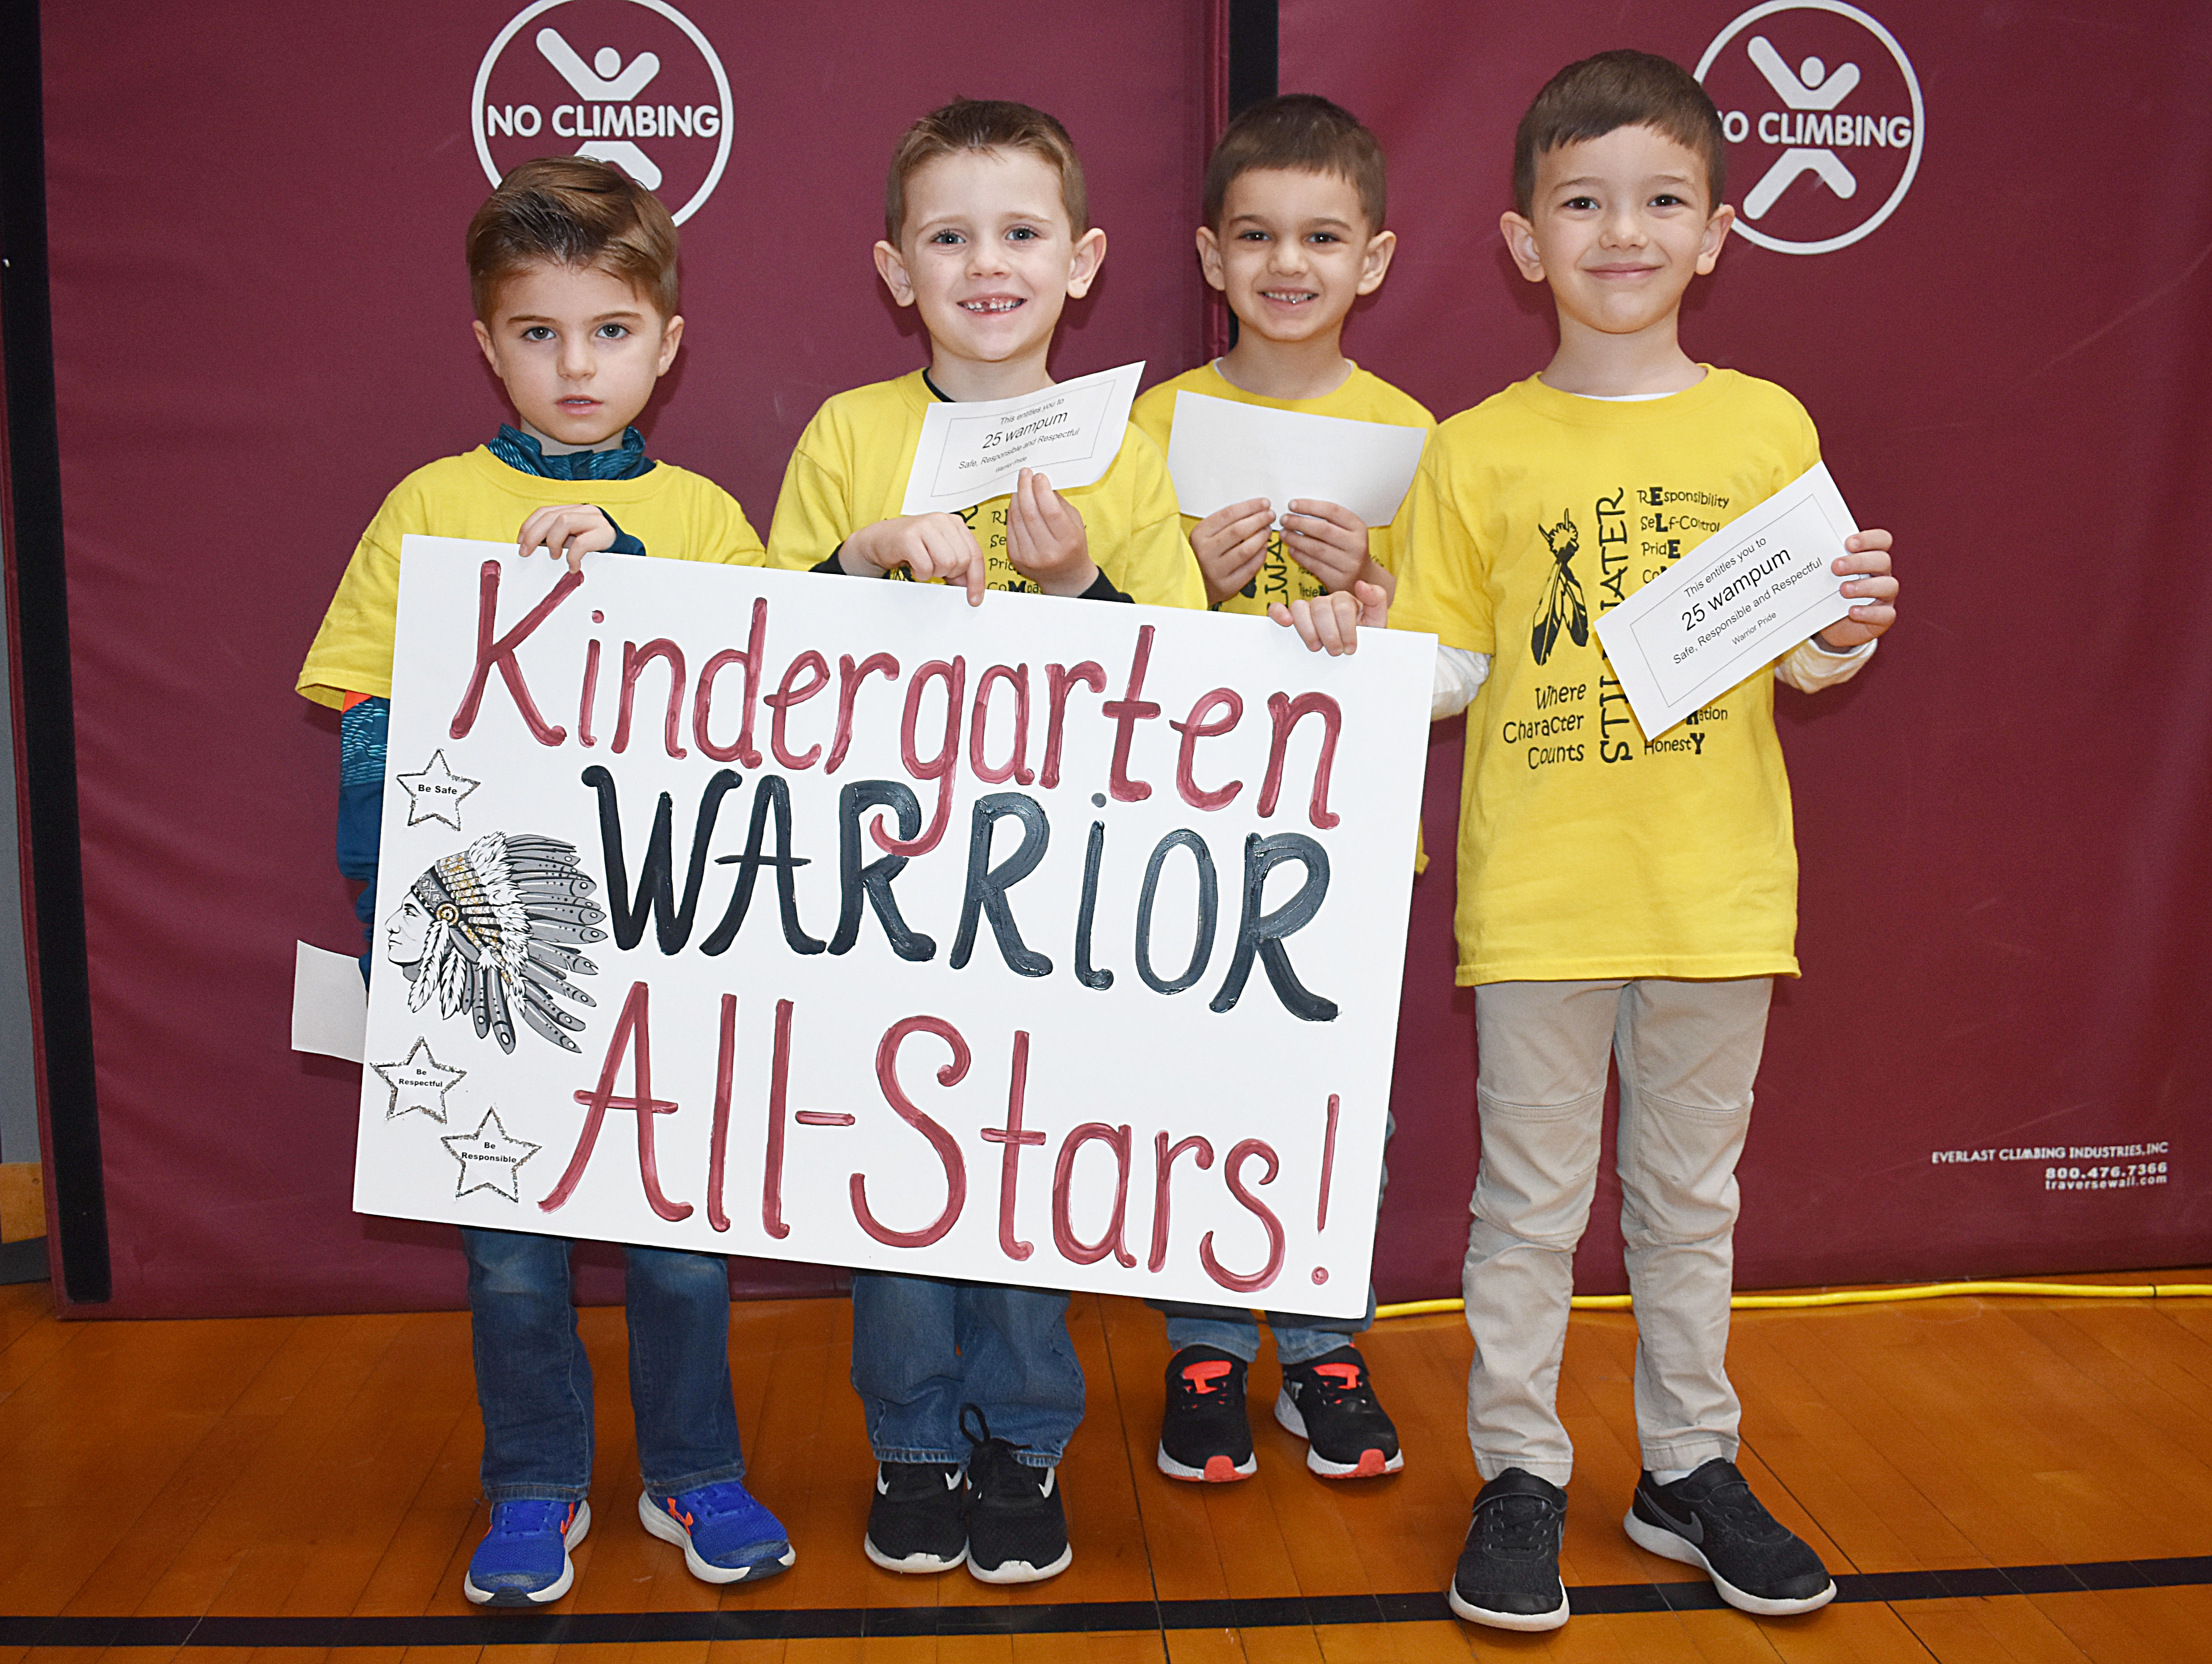 Grouo of kindergarten students gathered together for a picture with their all star sign